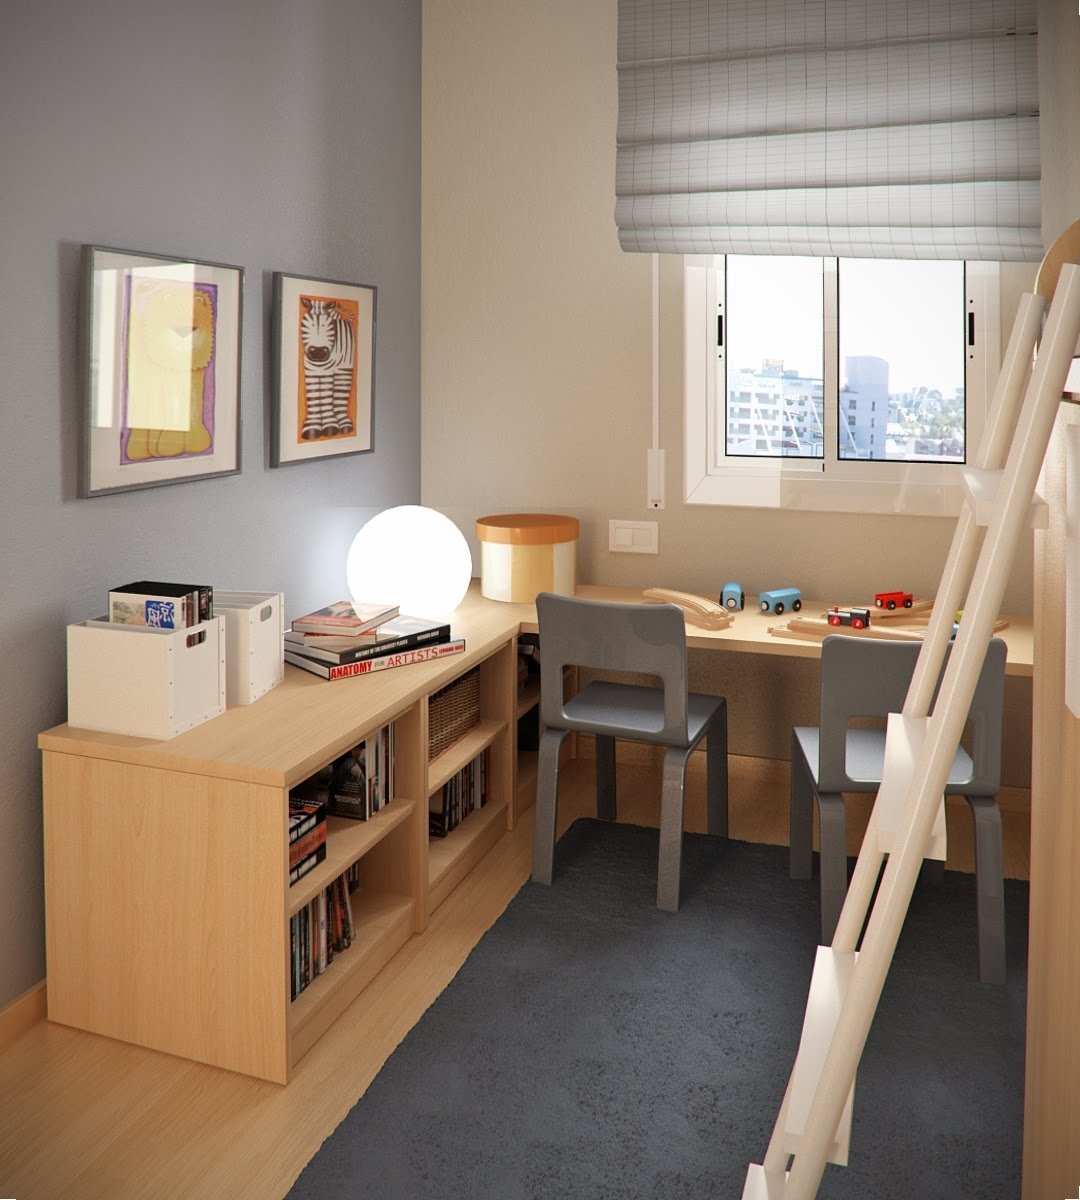 25 Kids Study Room Designs Decorating Ideas: 小空间儿童房设计(2)